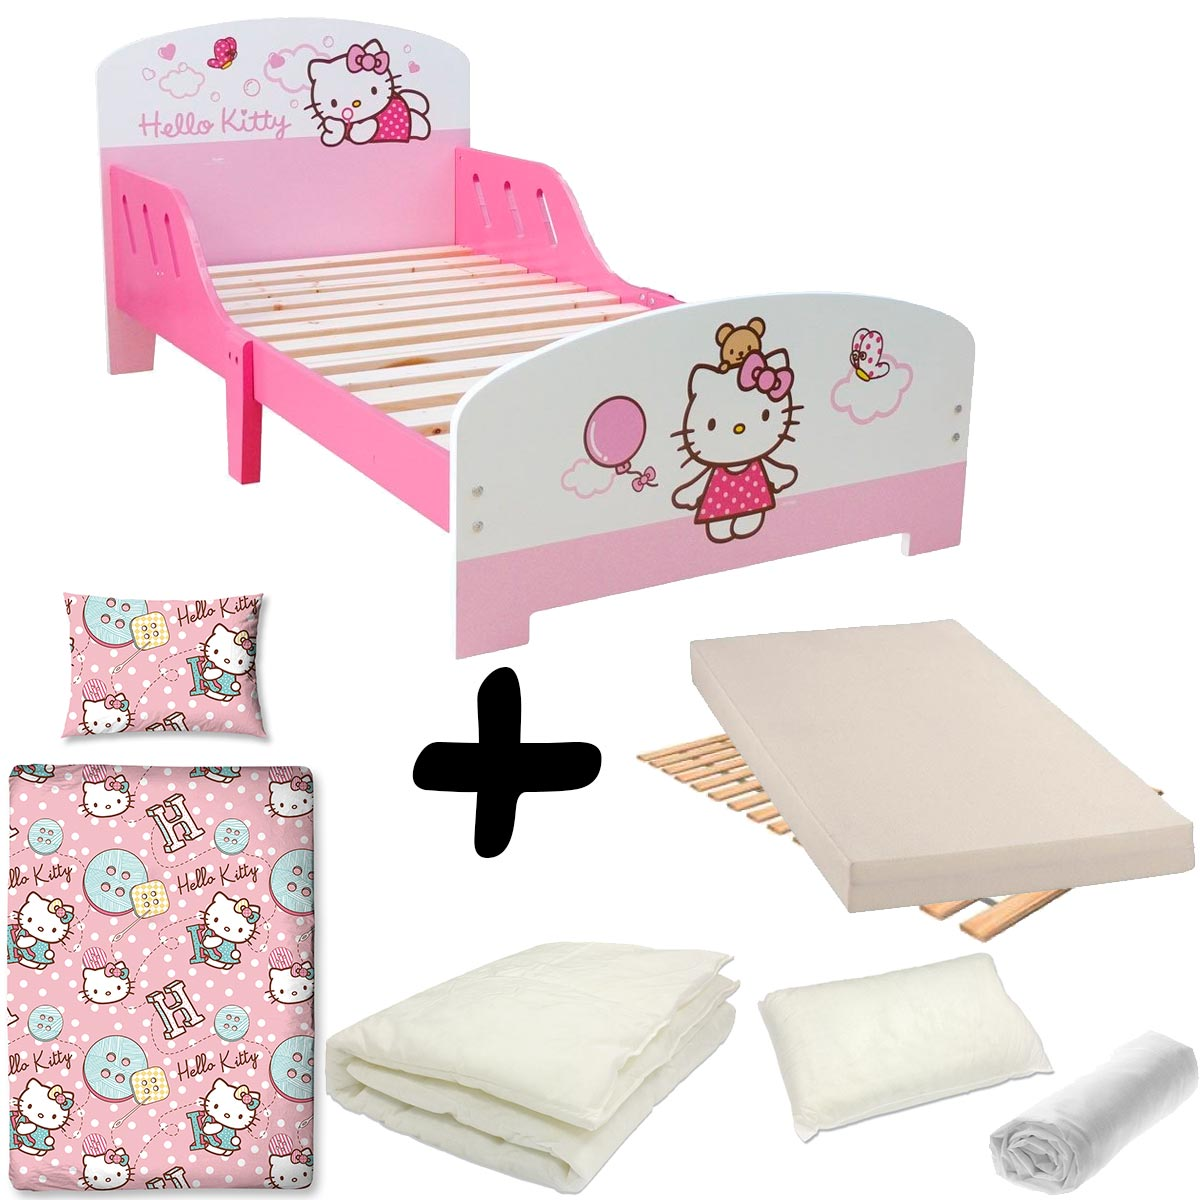 fauteuil club design docteur la peluche disney chez bebe gavroche. Black Bedroom Furniture Sets. Home Design Ideas